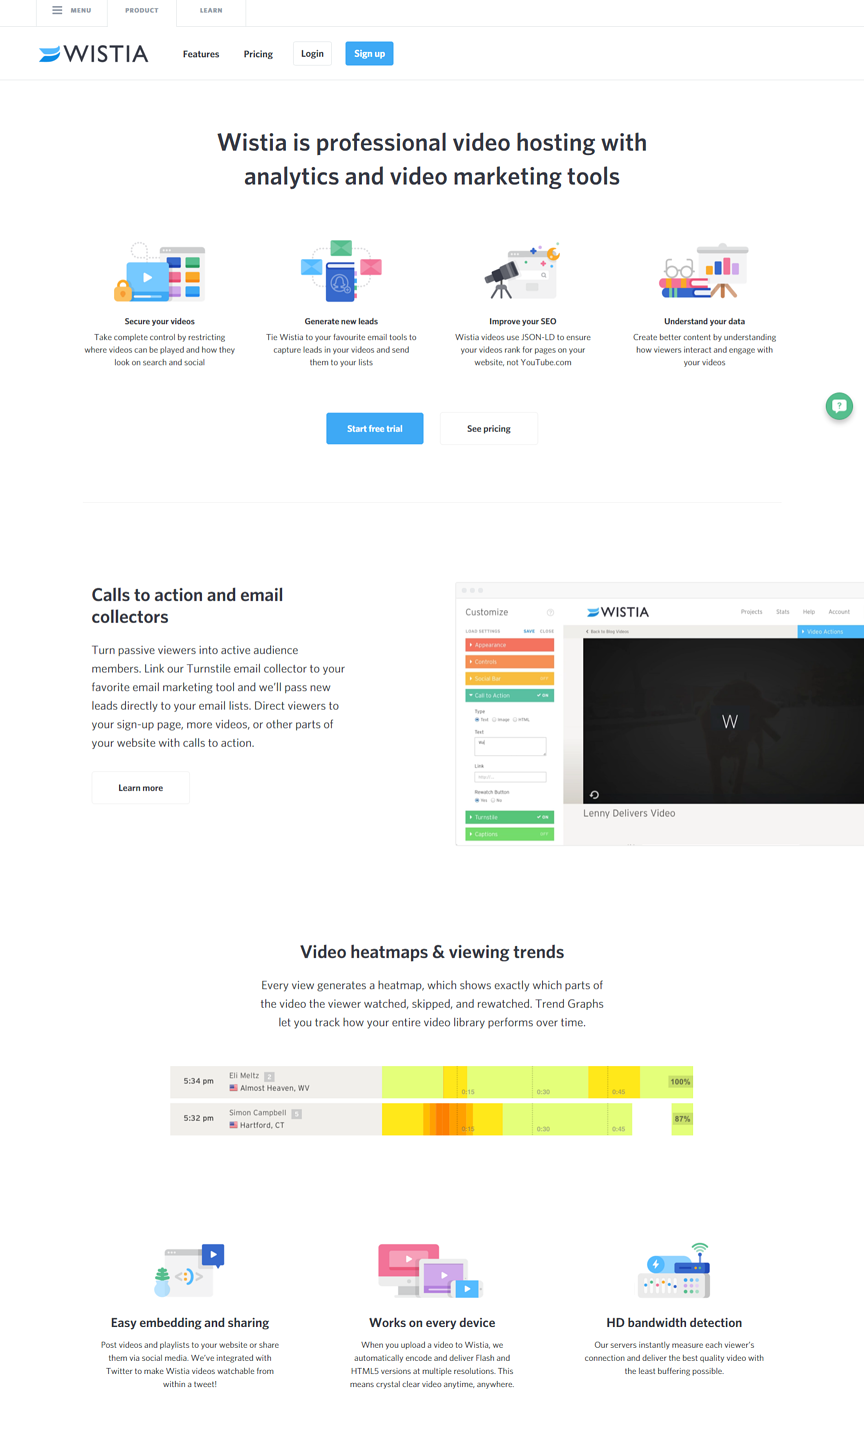 Wistia_Product_Features-448758-edited.png